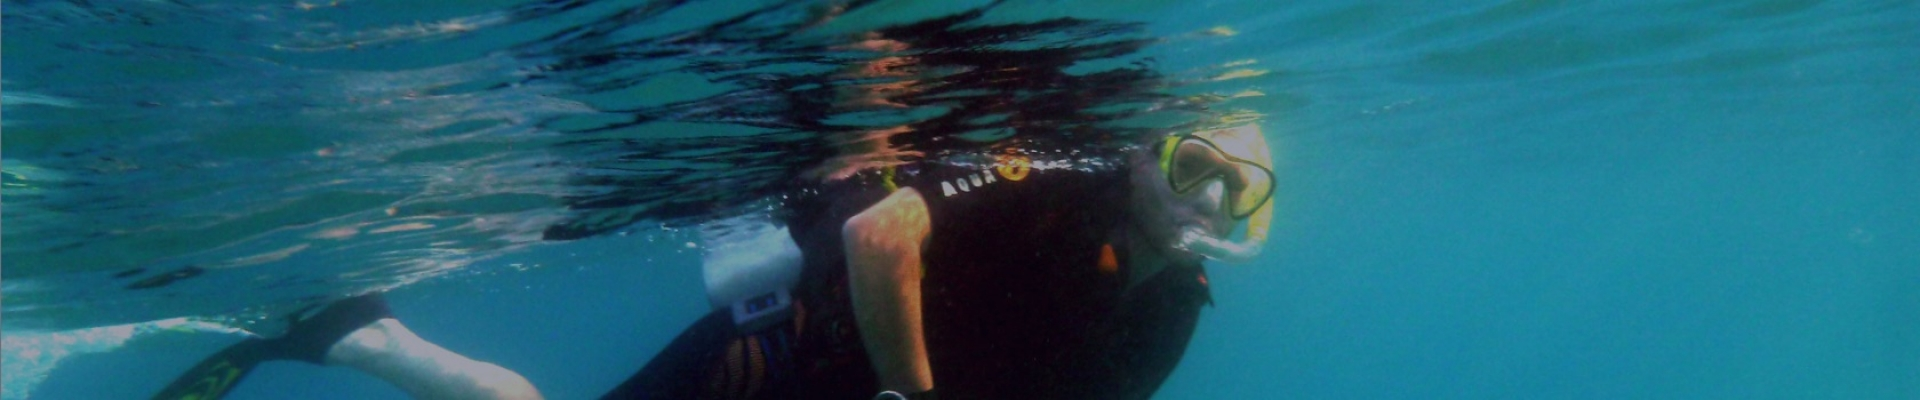 Scuba diving in Murudeshwar